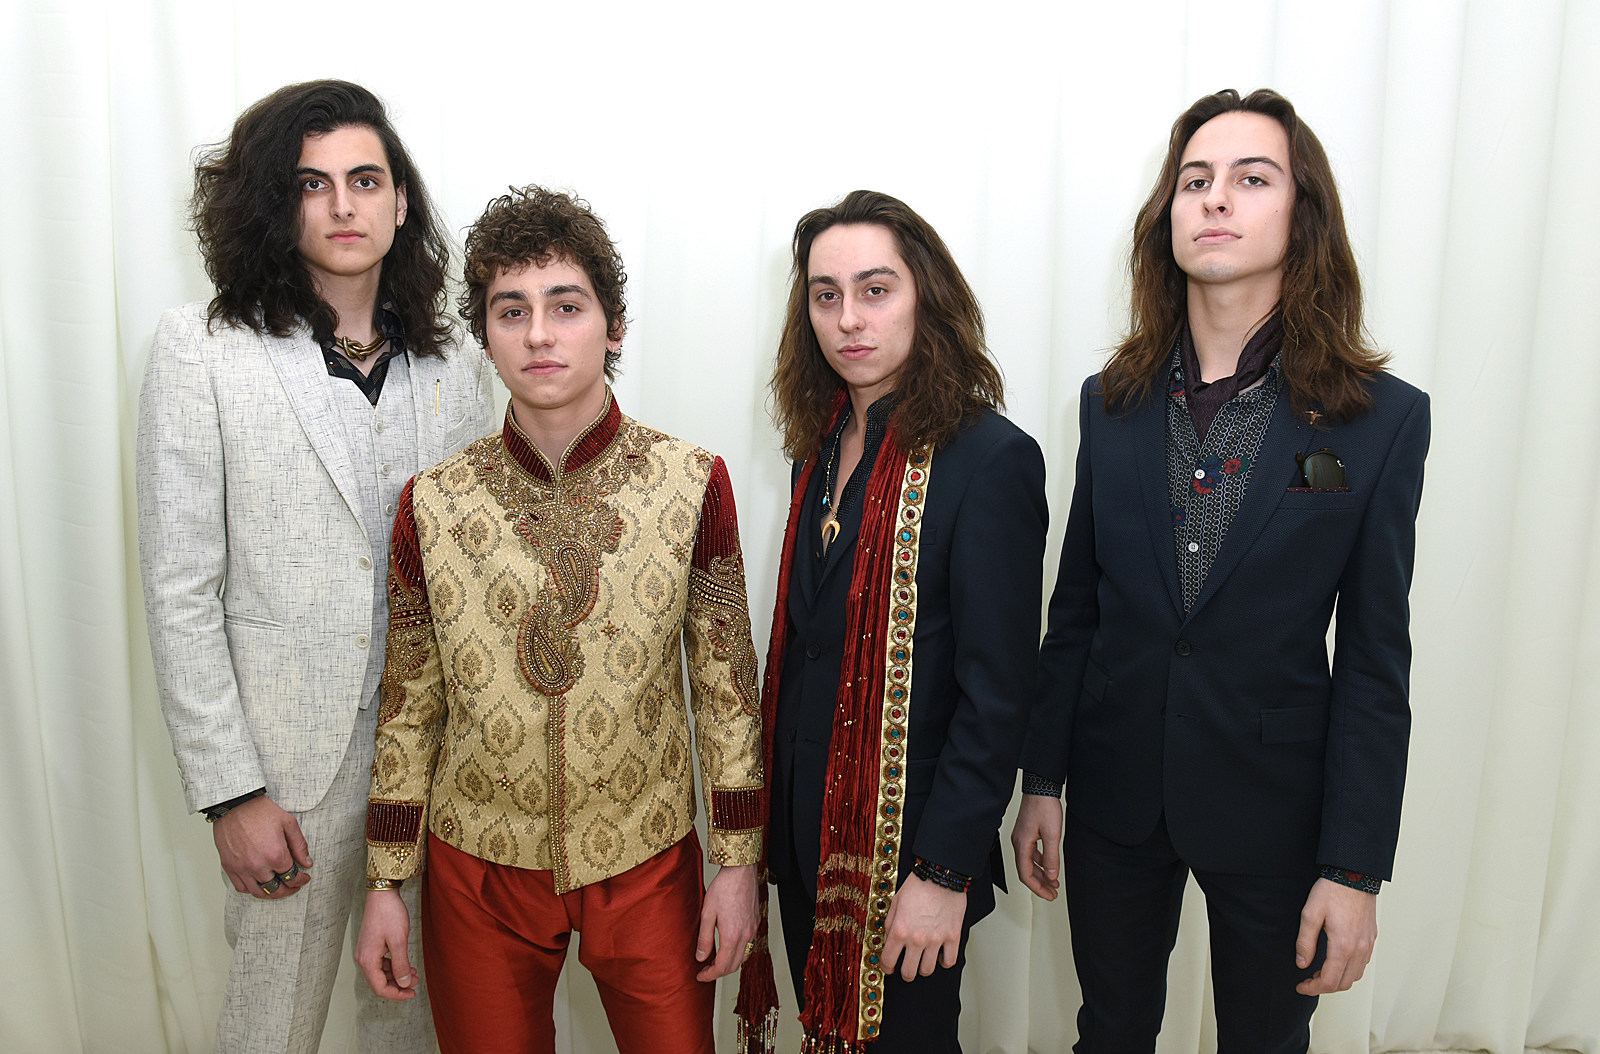 Greta Van Fleet Debut Album Nearly Done, Due This Year